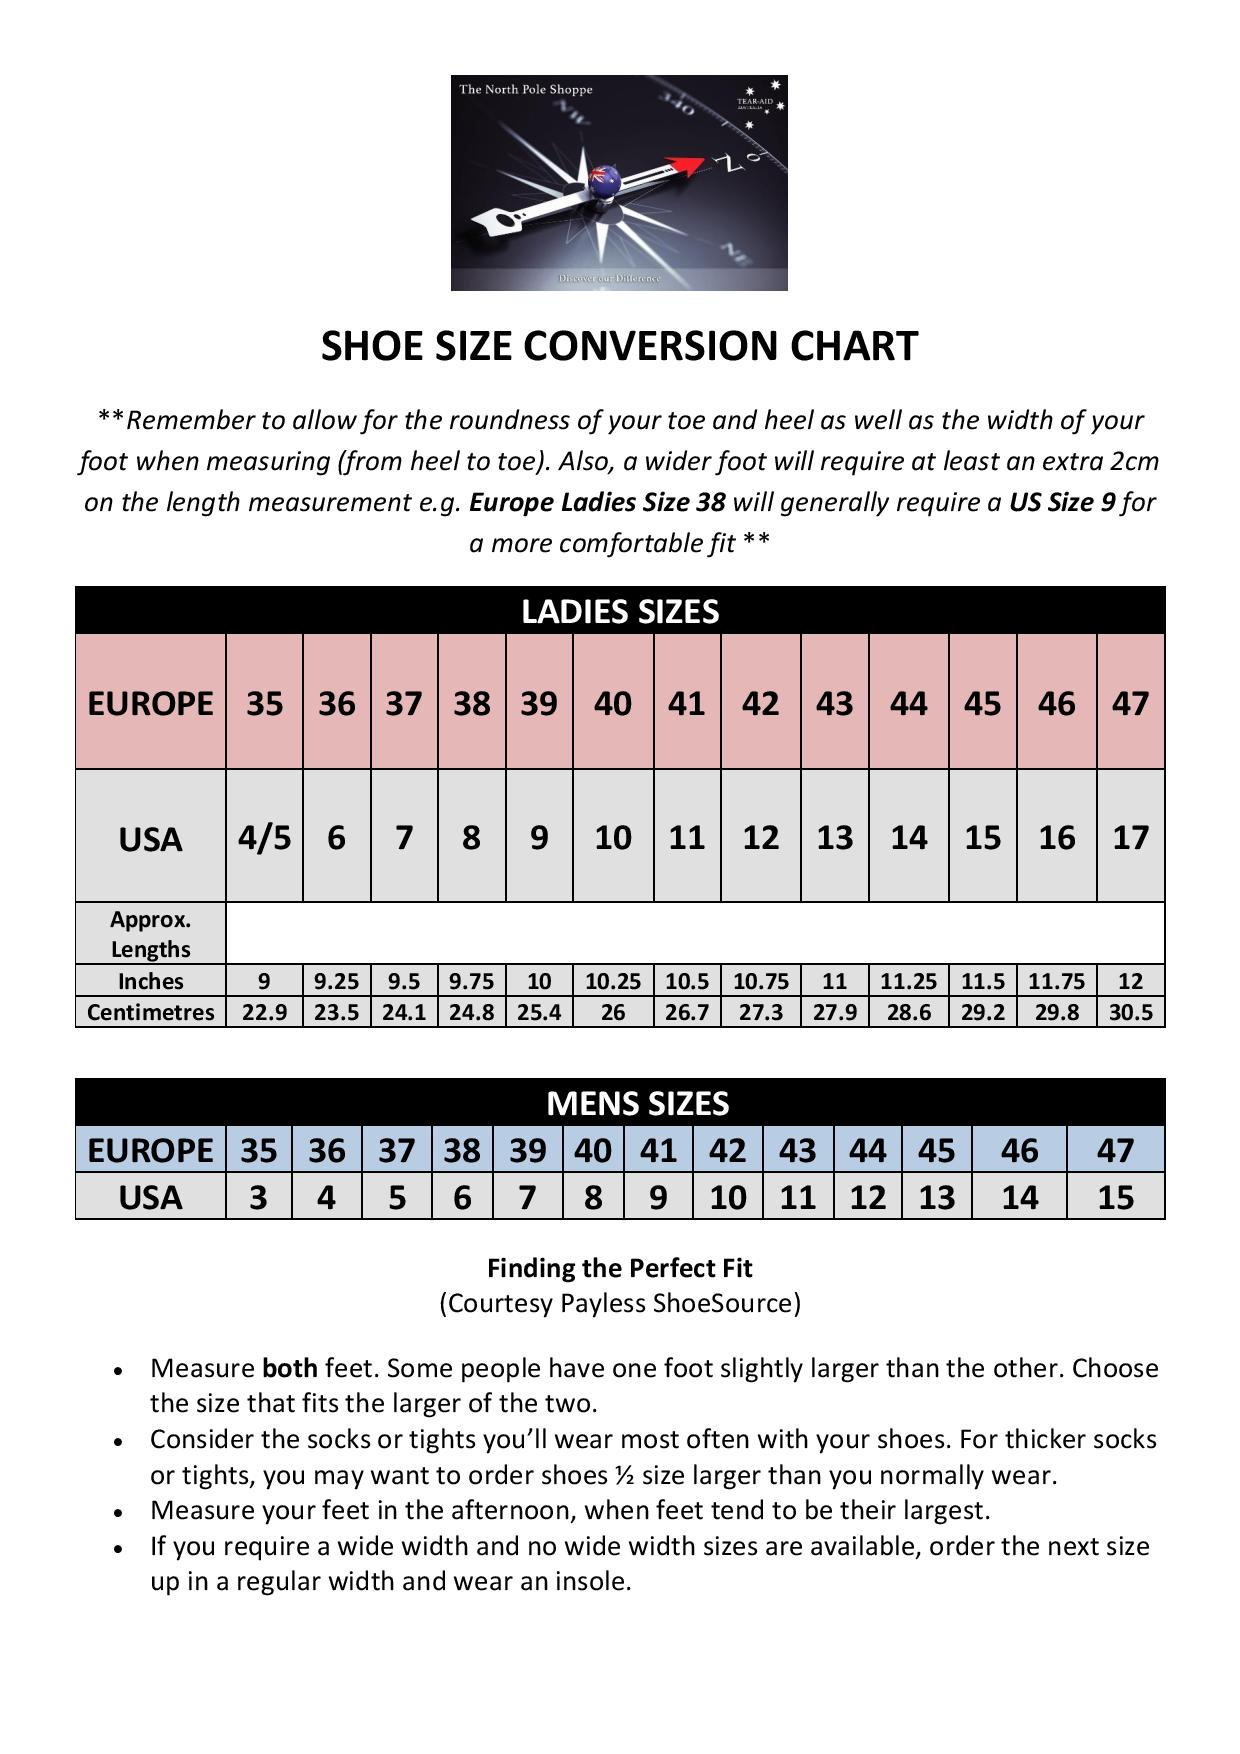 shoe-size-conversion-chart-updated-august-2018-page-001.jpg